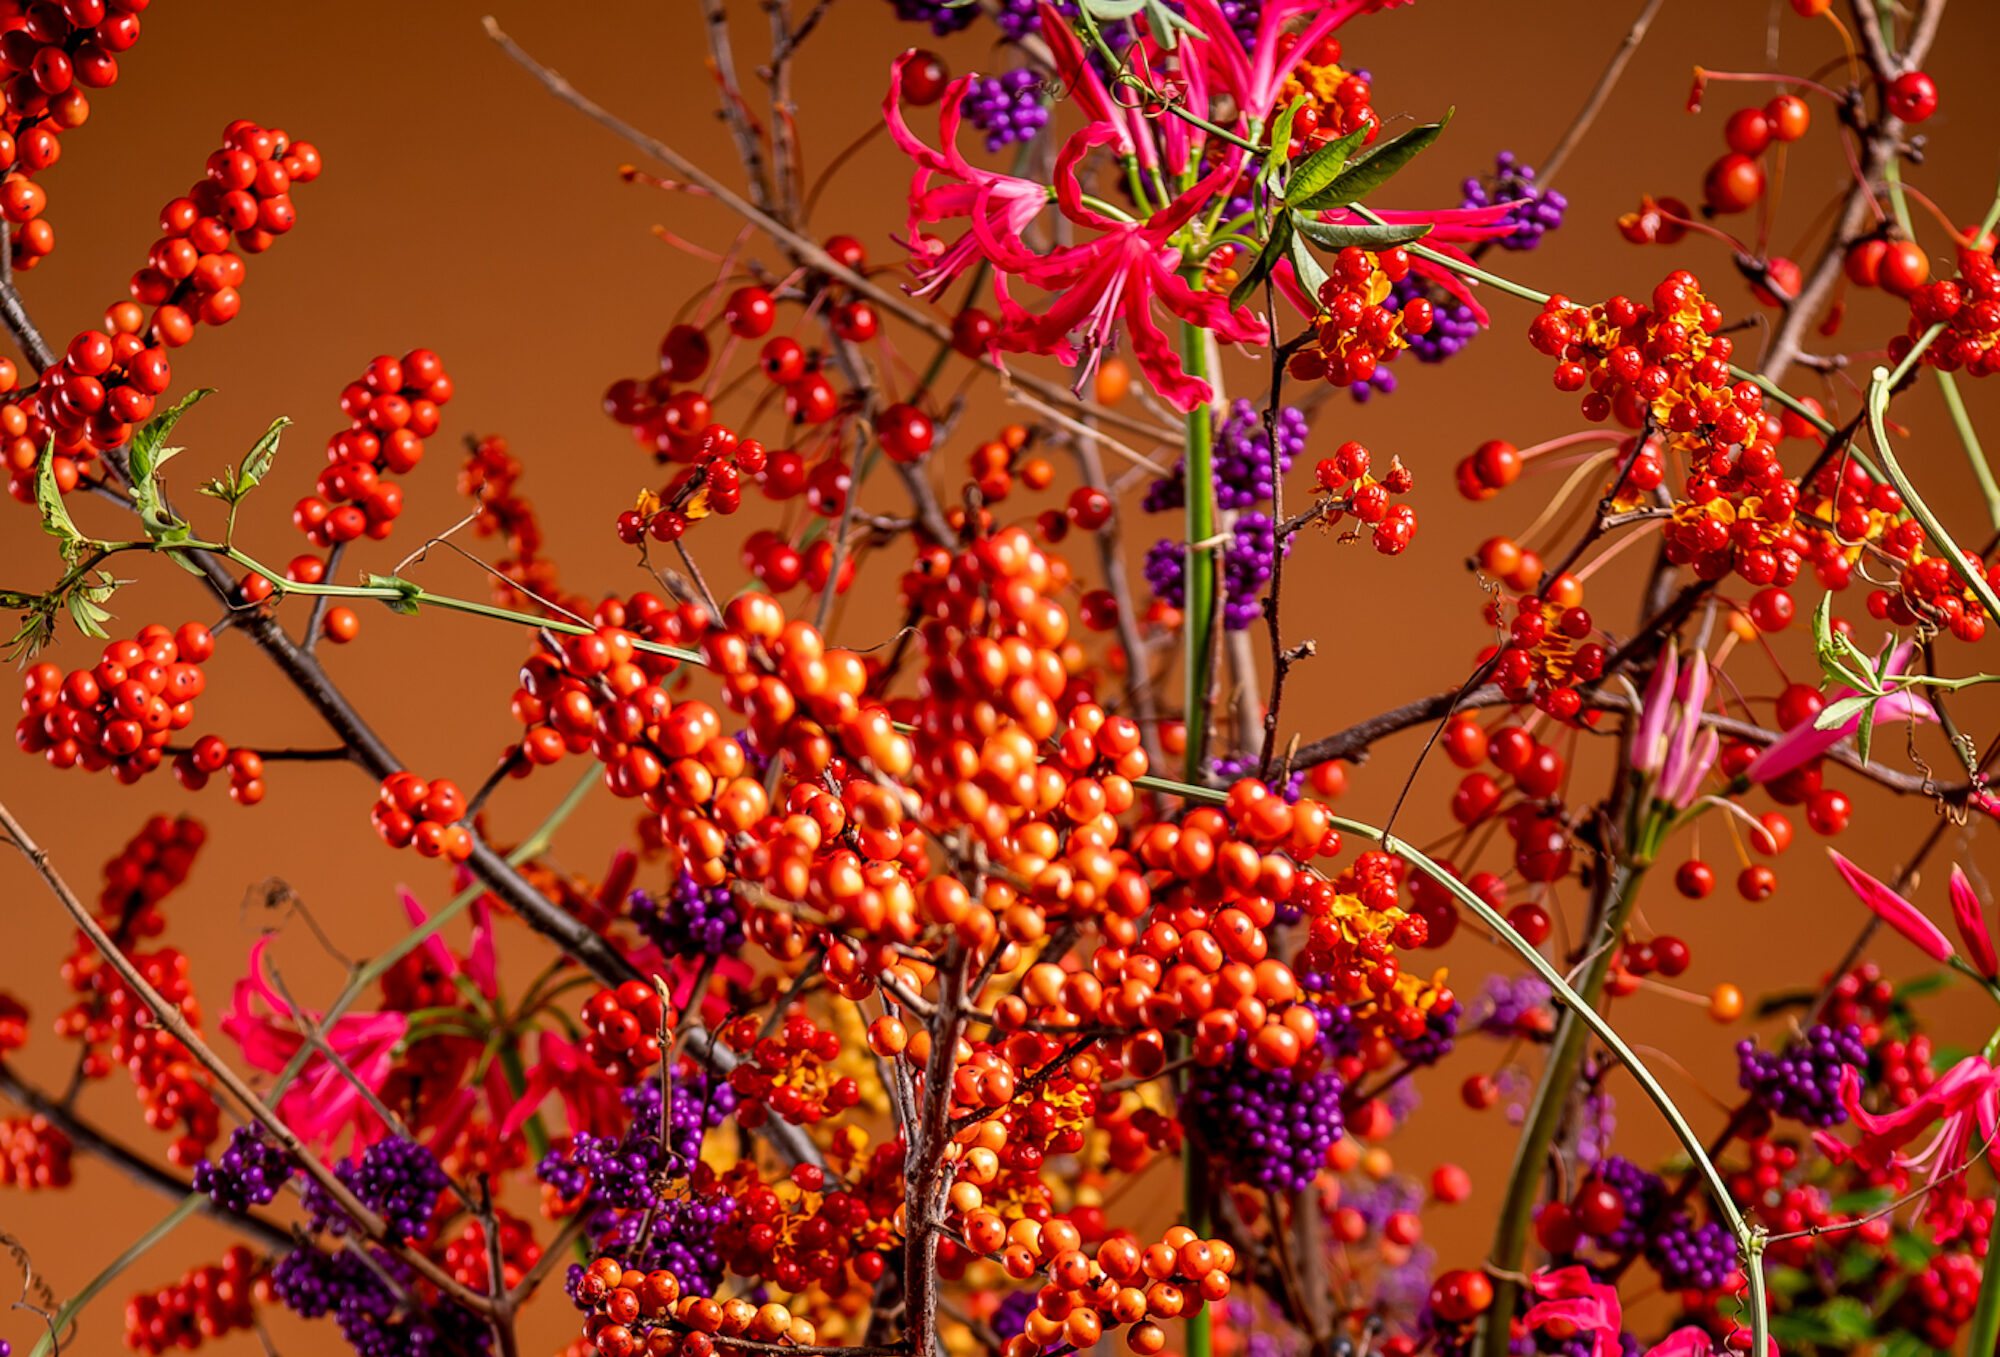 Berries beyond Christmas